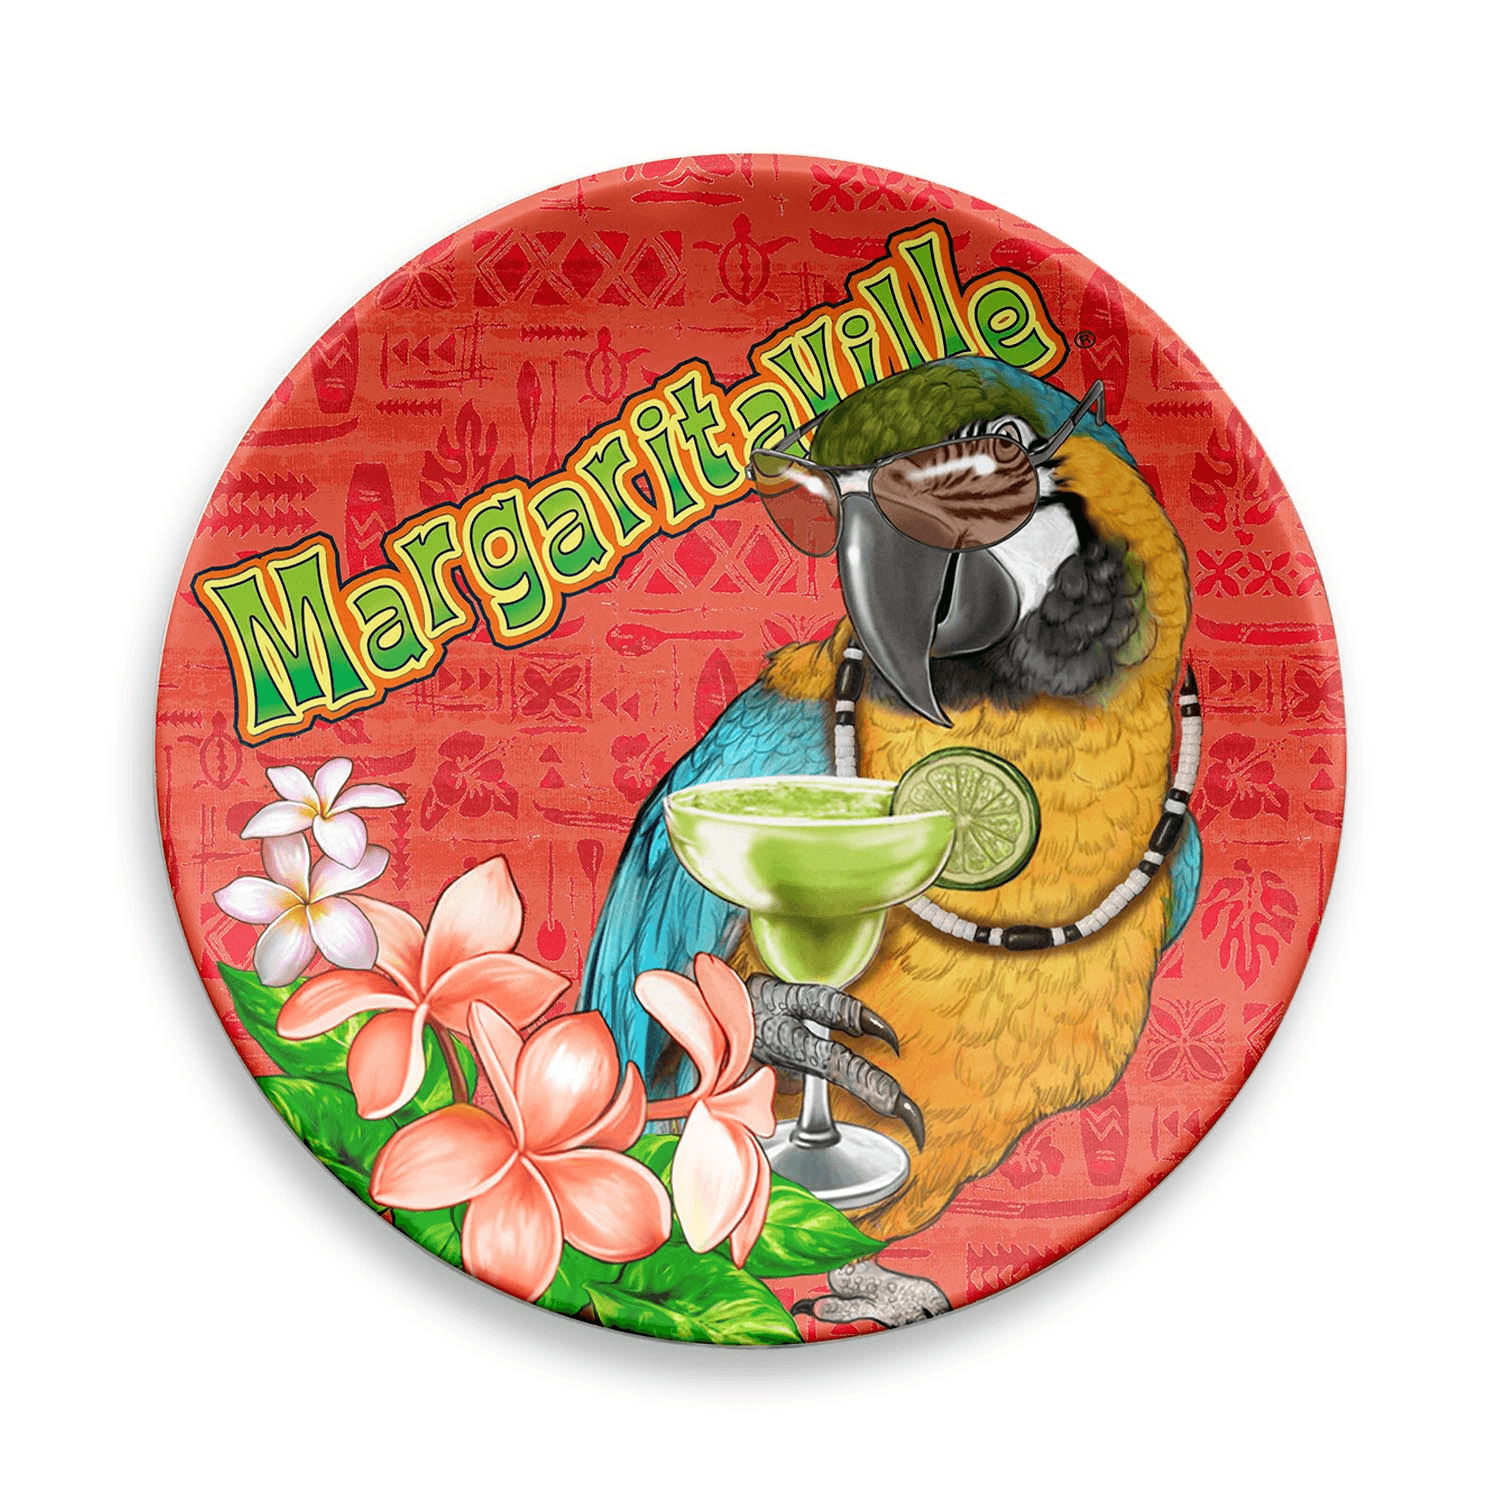 ICON ANIMATED PLATE SET OF 4  Margaritaville Apparel Store